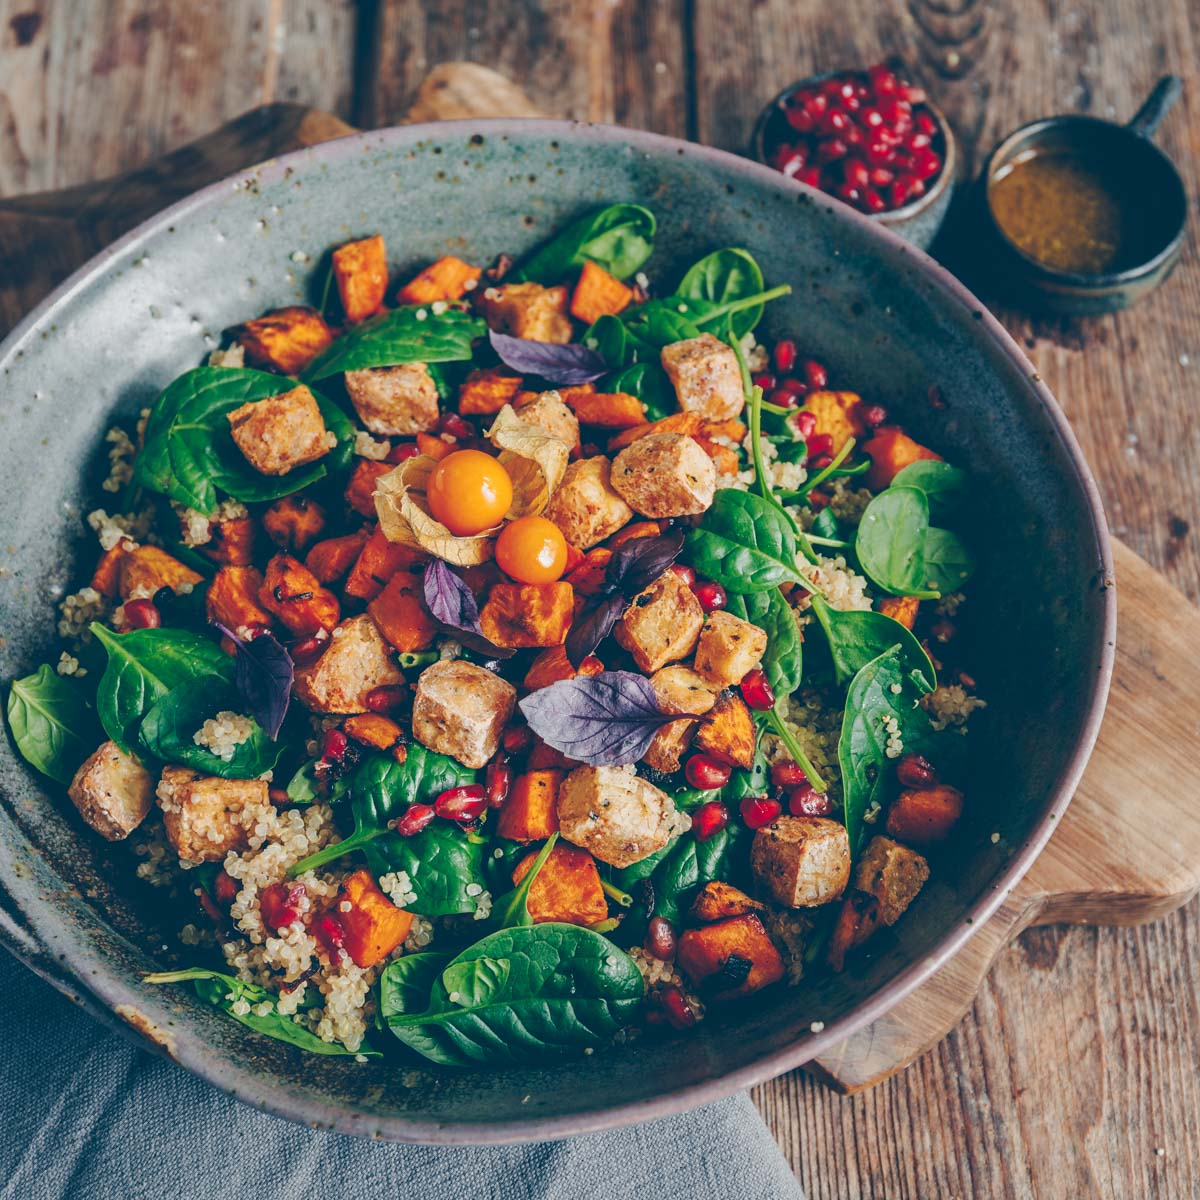 Colorful salad with sweet potato and quinoa